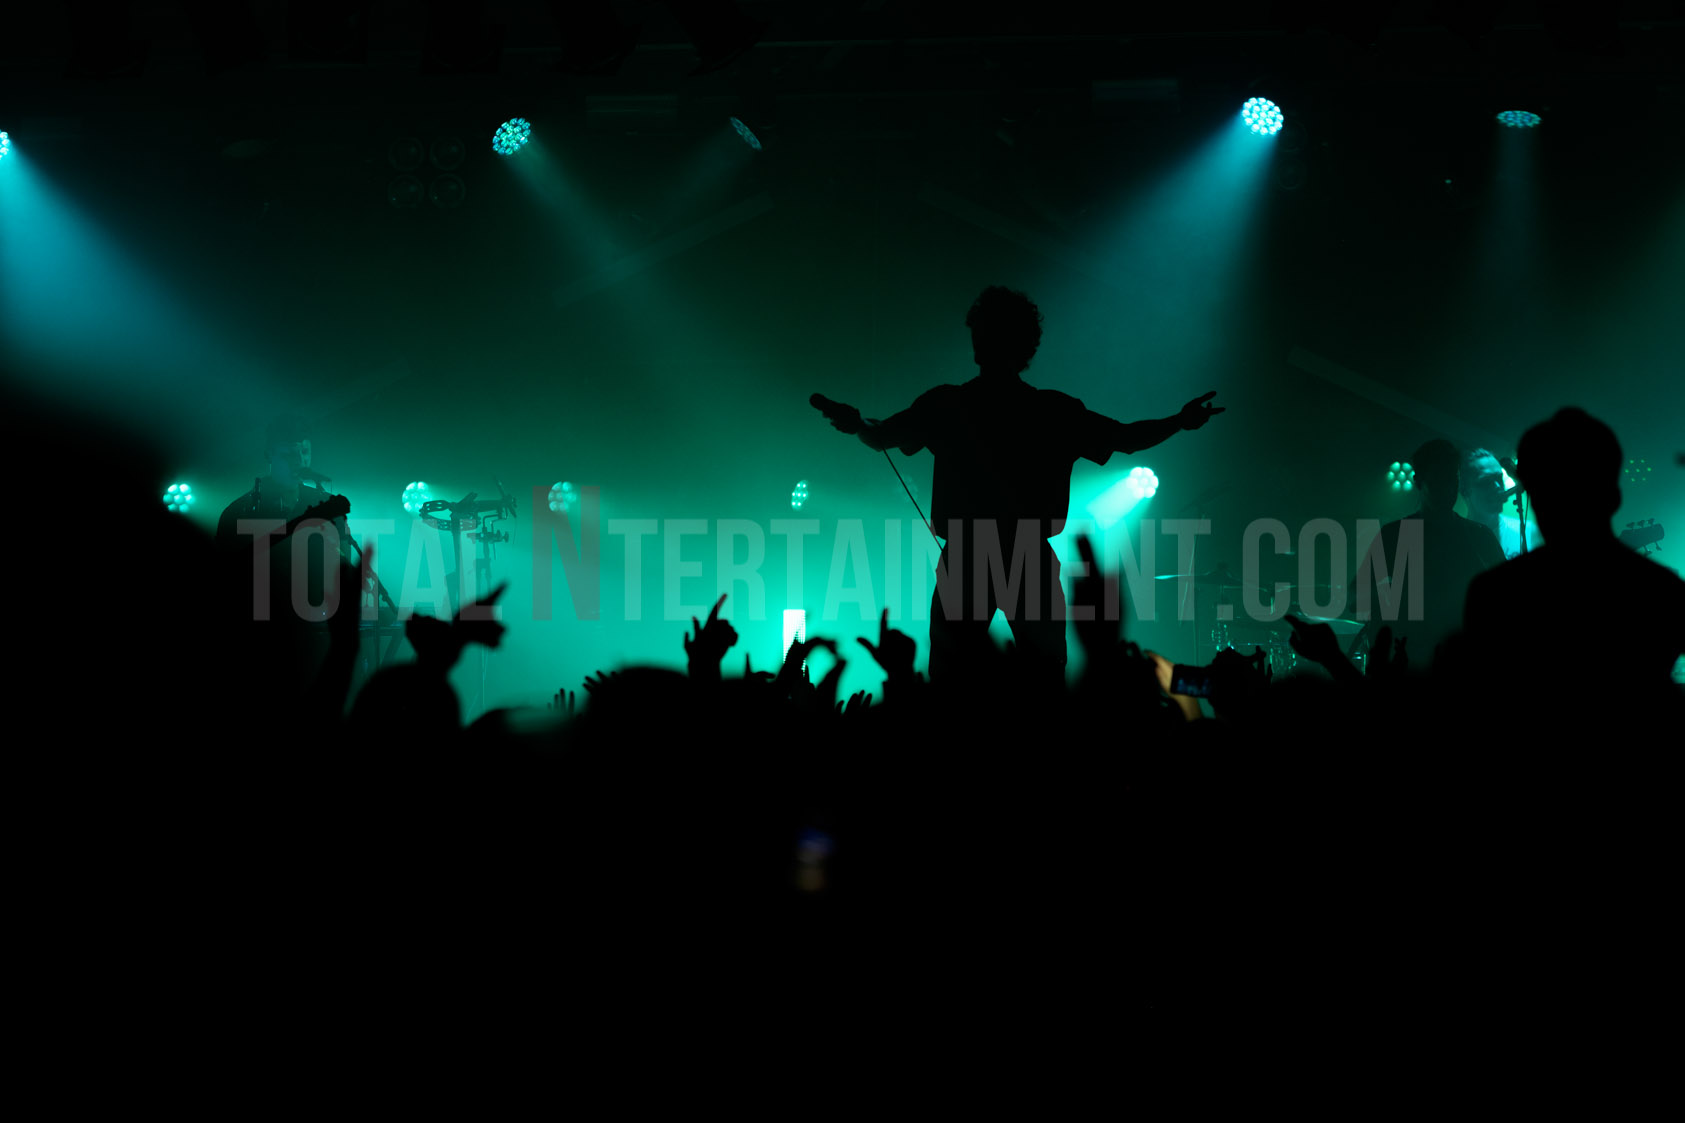 Don Broco, Liverpool, Jay Chow, Live, totalntertainment